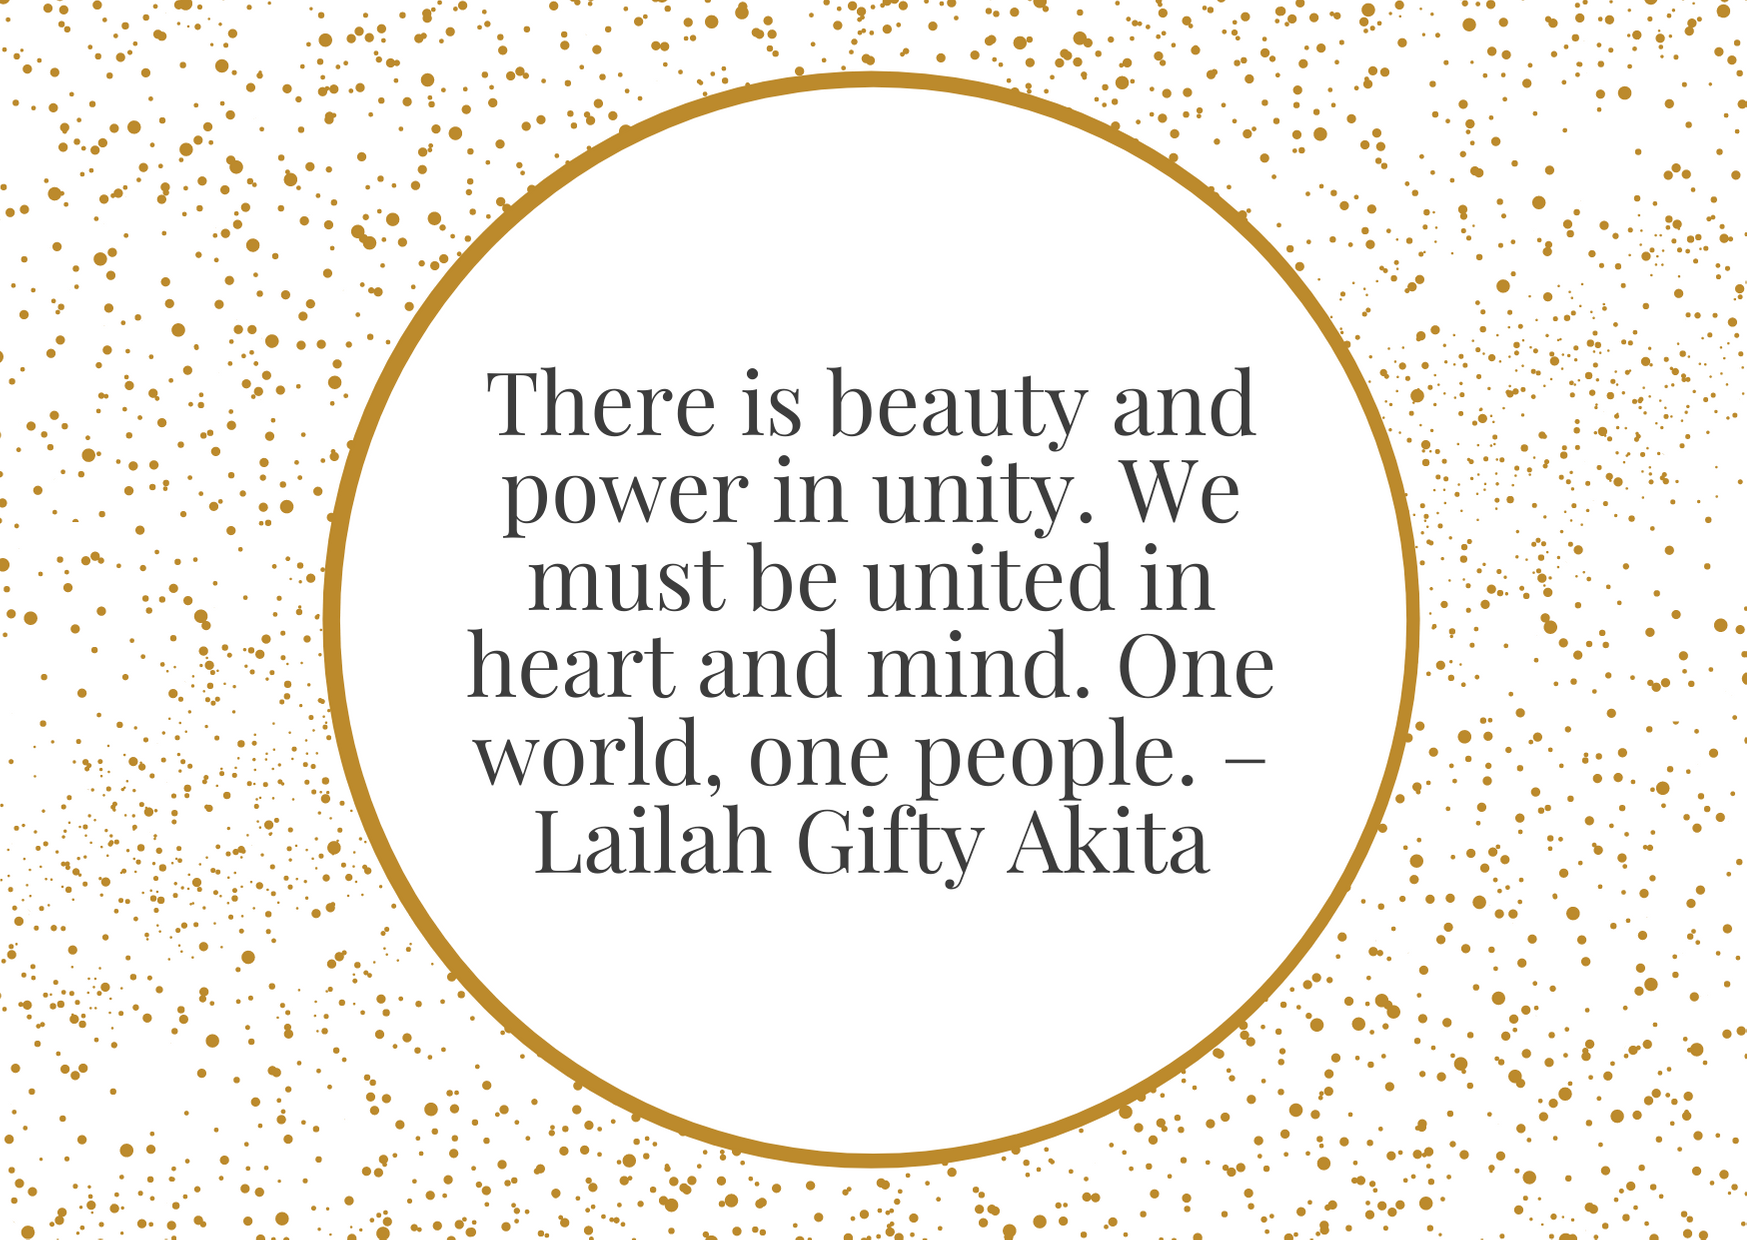 """There is beauty and power in unity. We must be united in heart and mind. One world, one people."""" – Lailah Gifty Akita"""